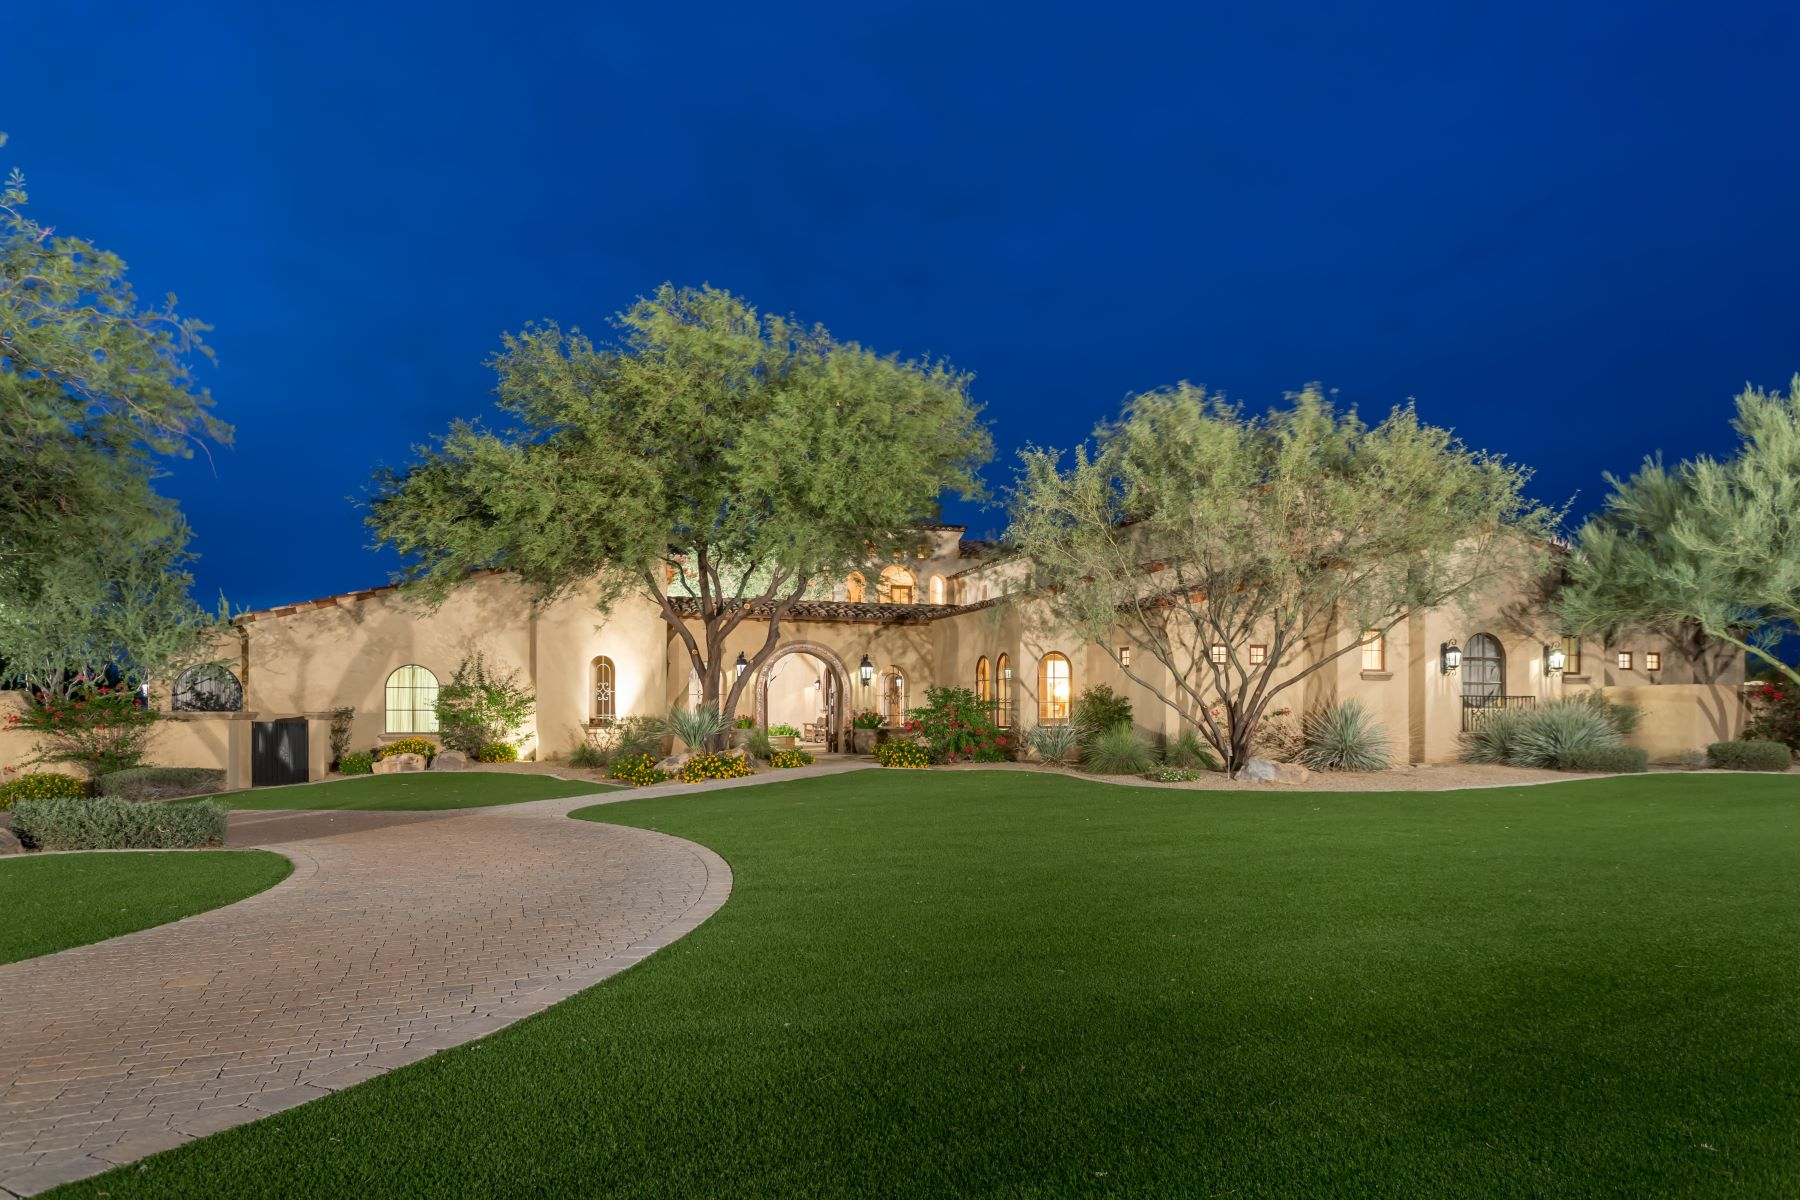 Moradia para Venda às Exclusive Estate Living Surrounded by sprawling mountains 24546 N 91st St Scottsdale, Arizona, 85255 Estados Unidos